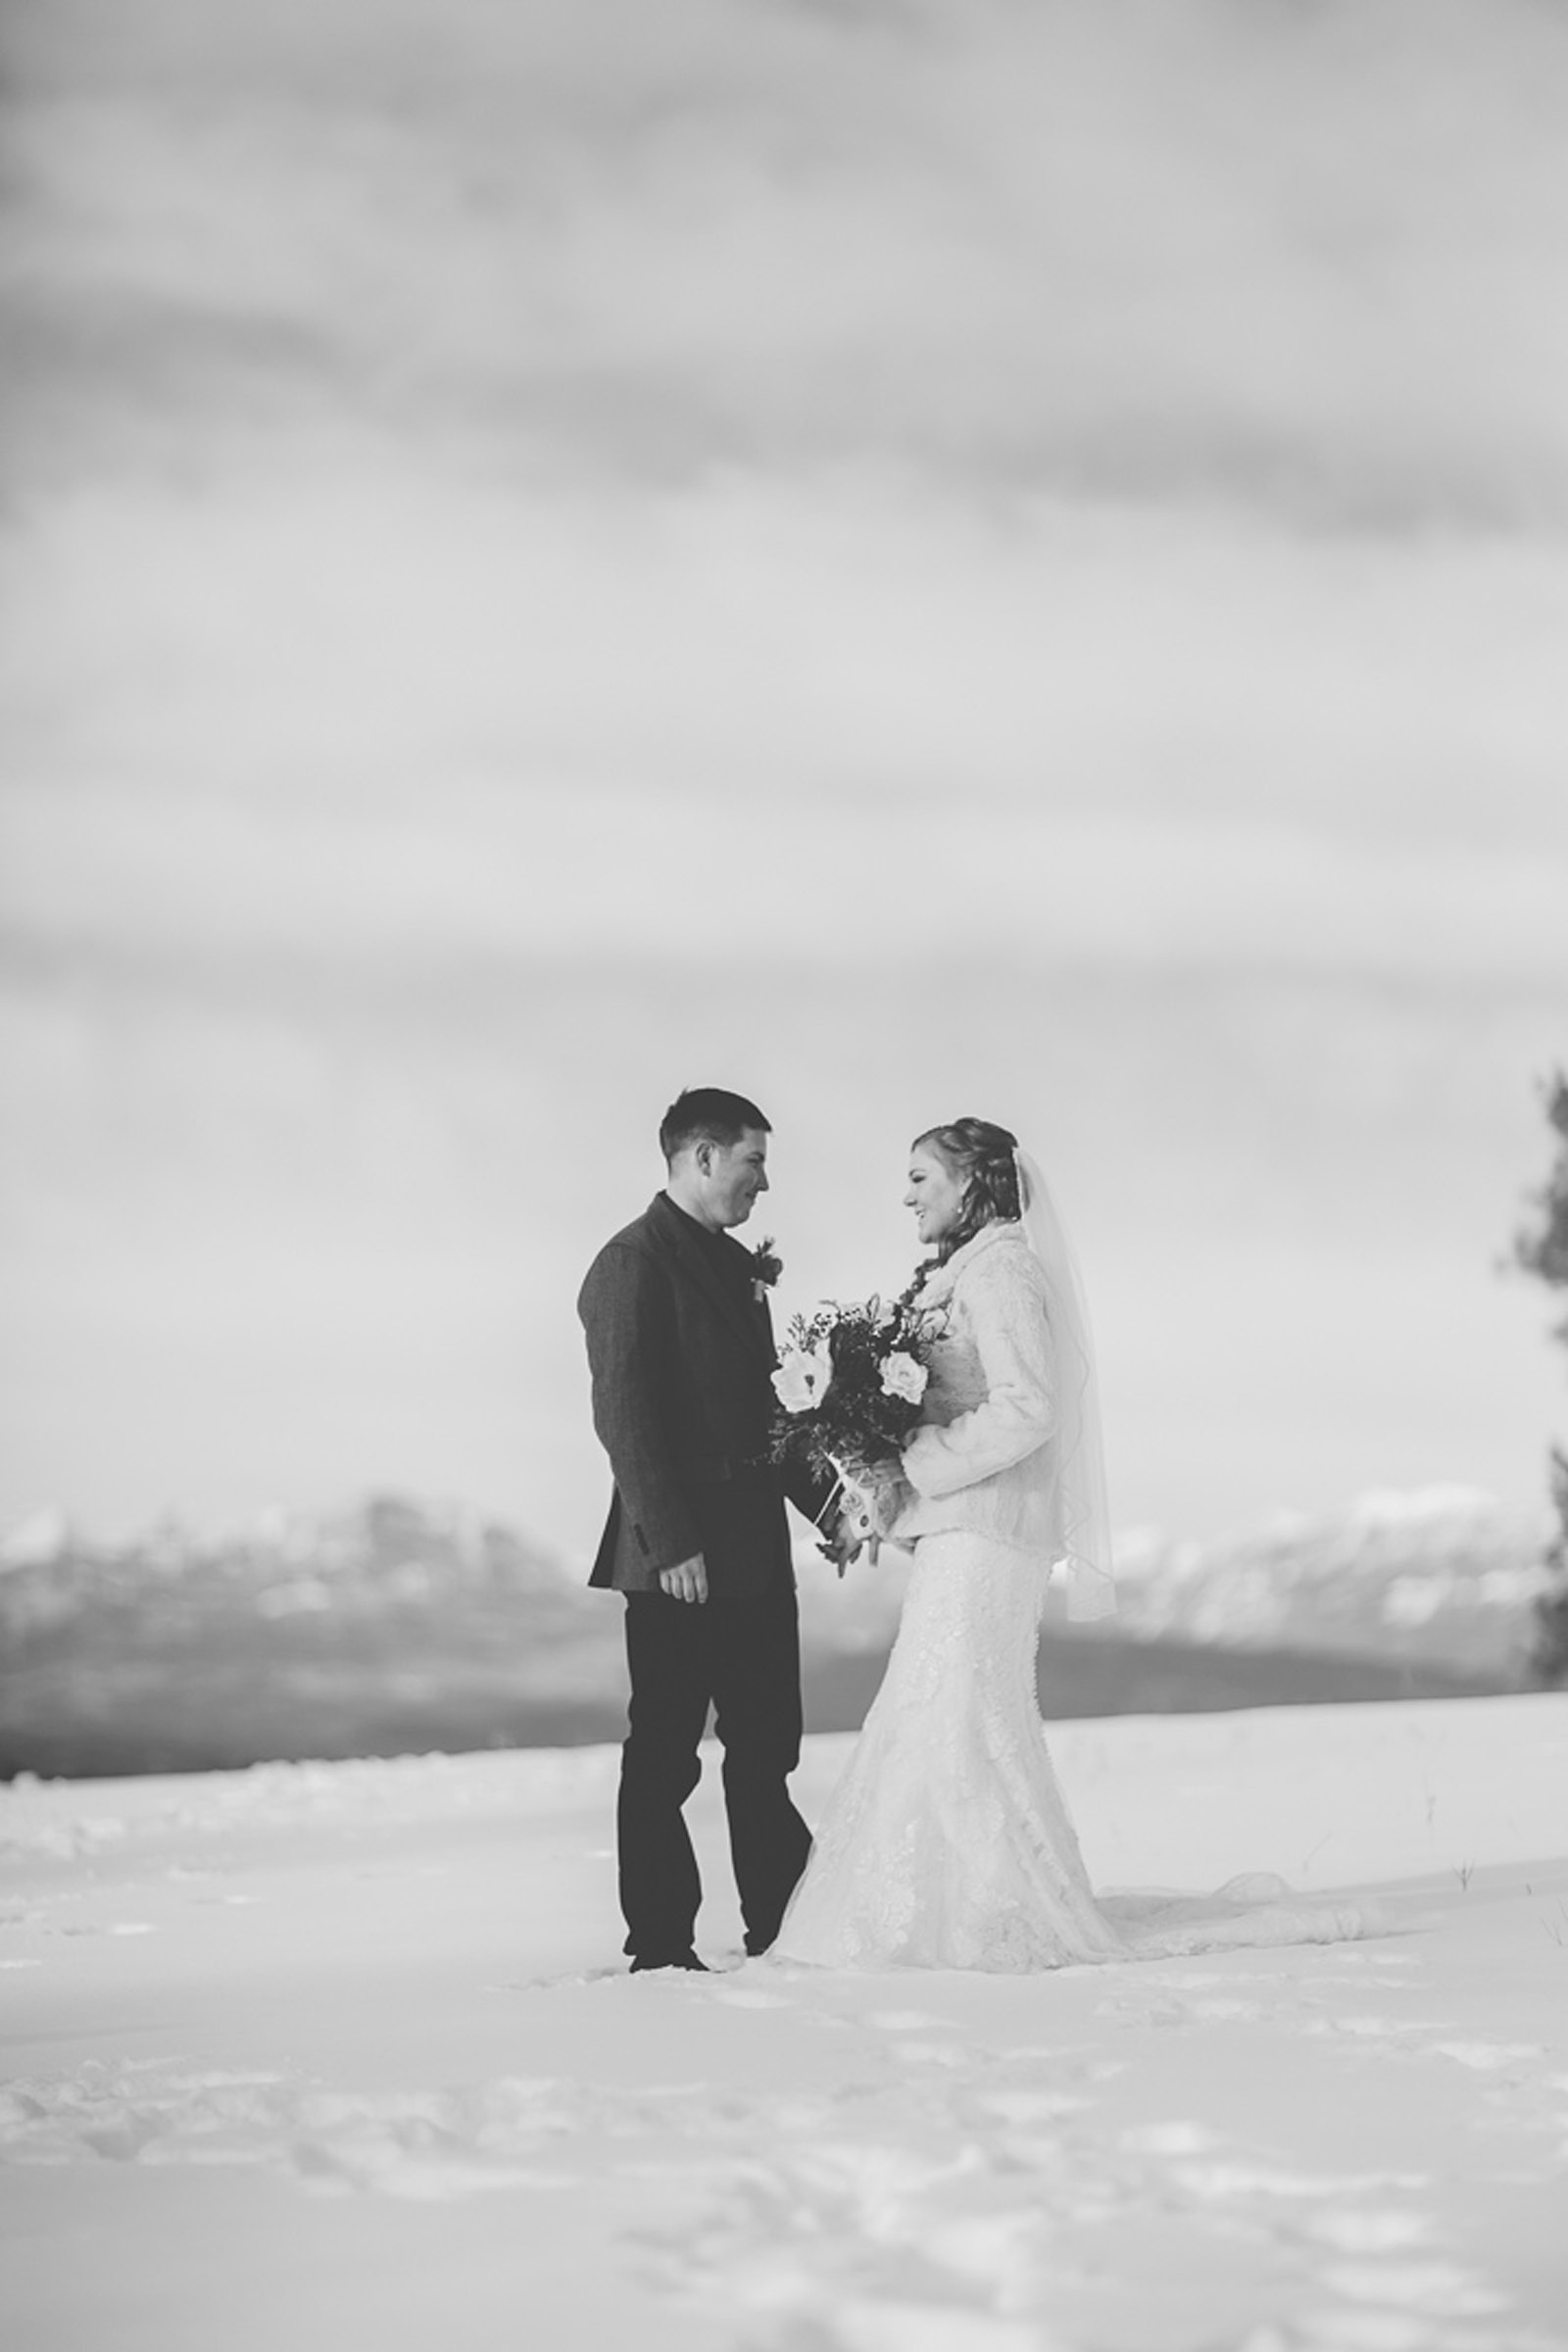 133-wedding-photographer-captures-newlyweds-in-snow-during-a-winter-snow-wedding-in-the-mountains-in-colorado